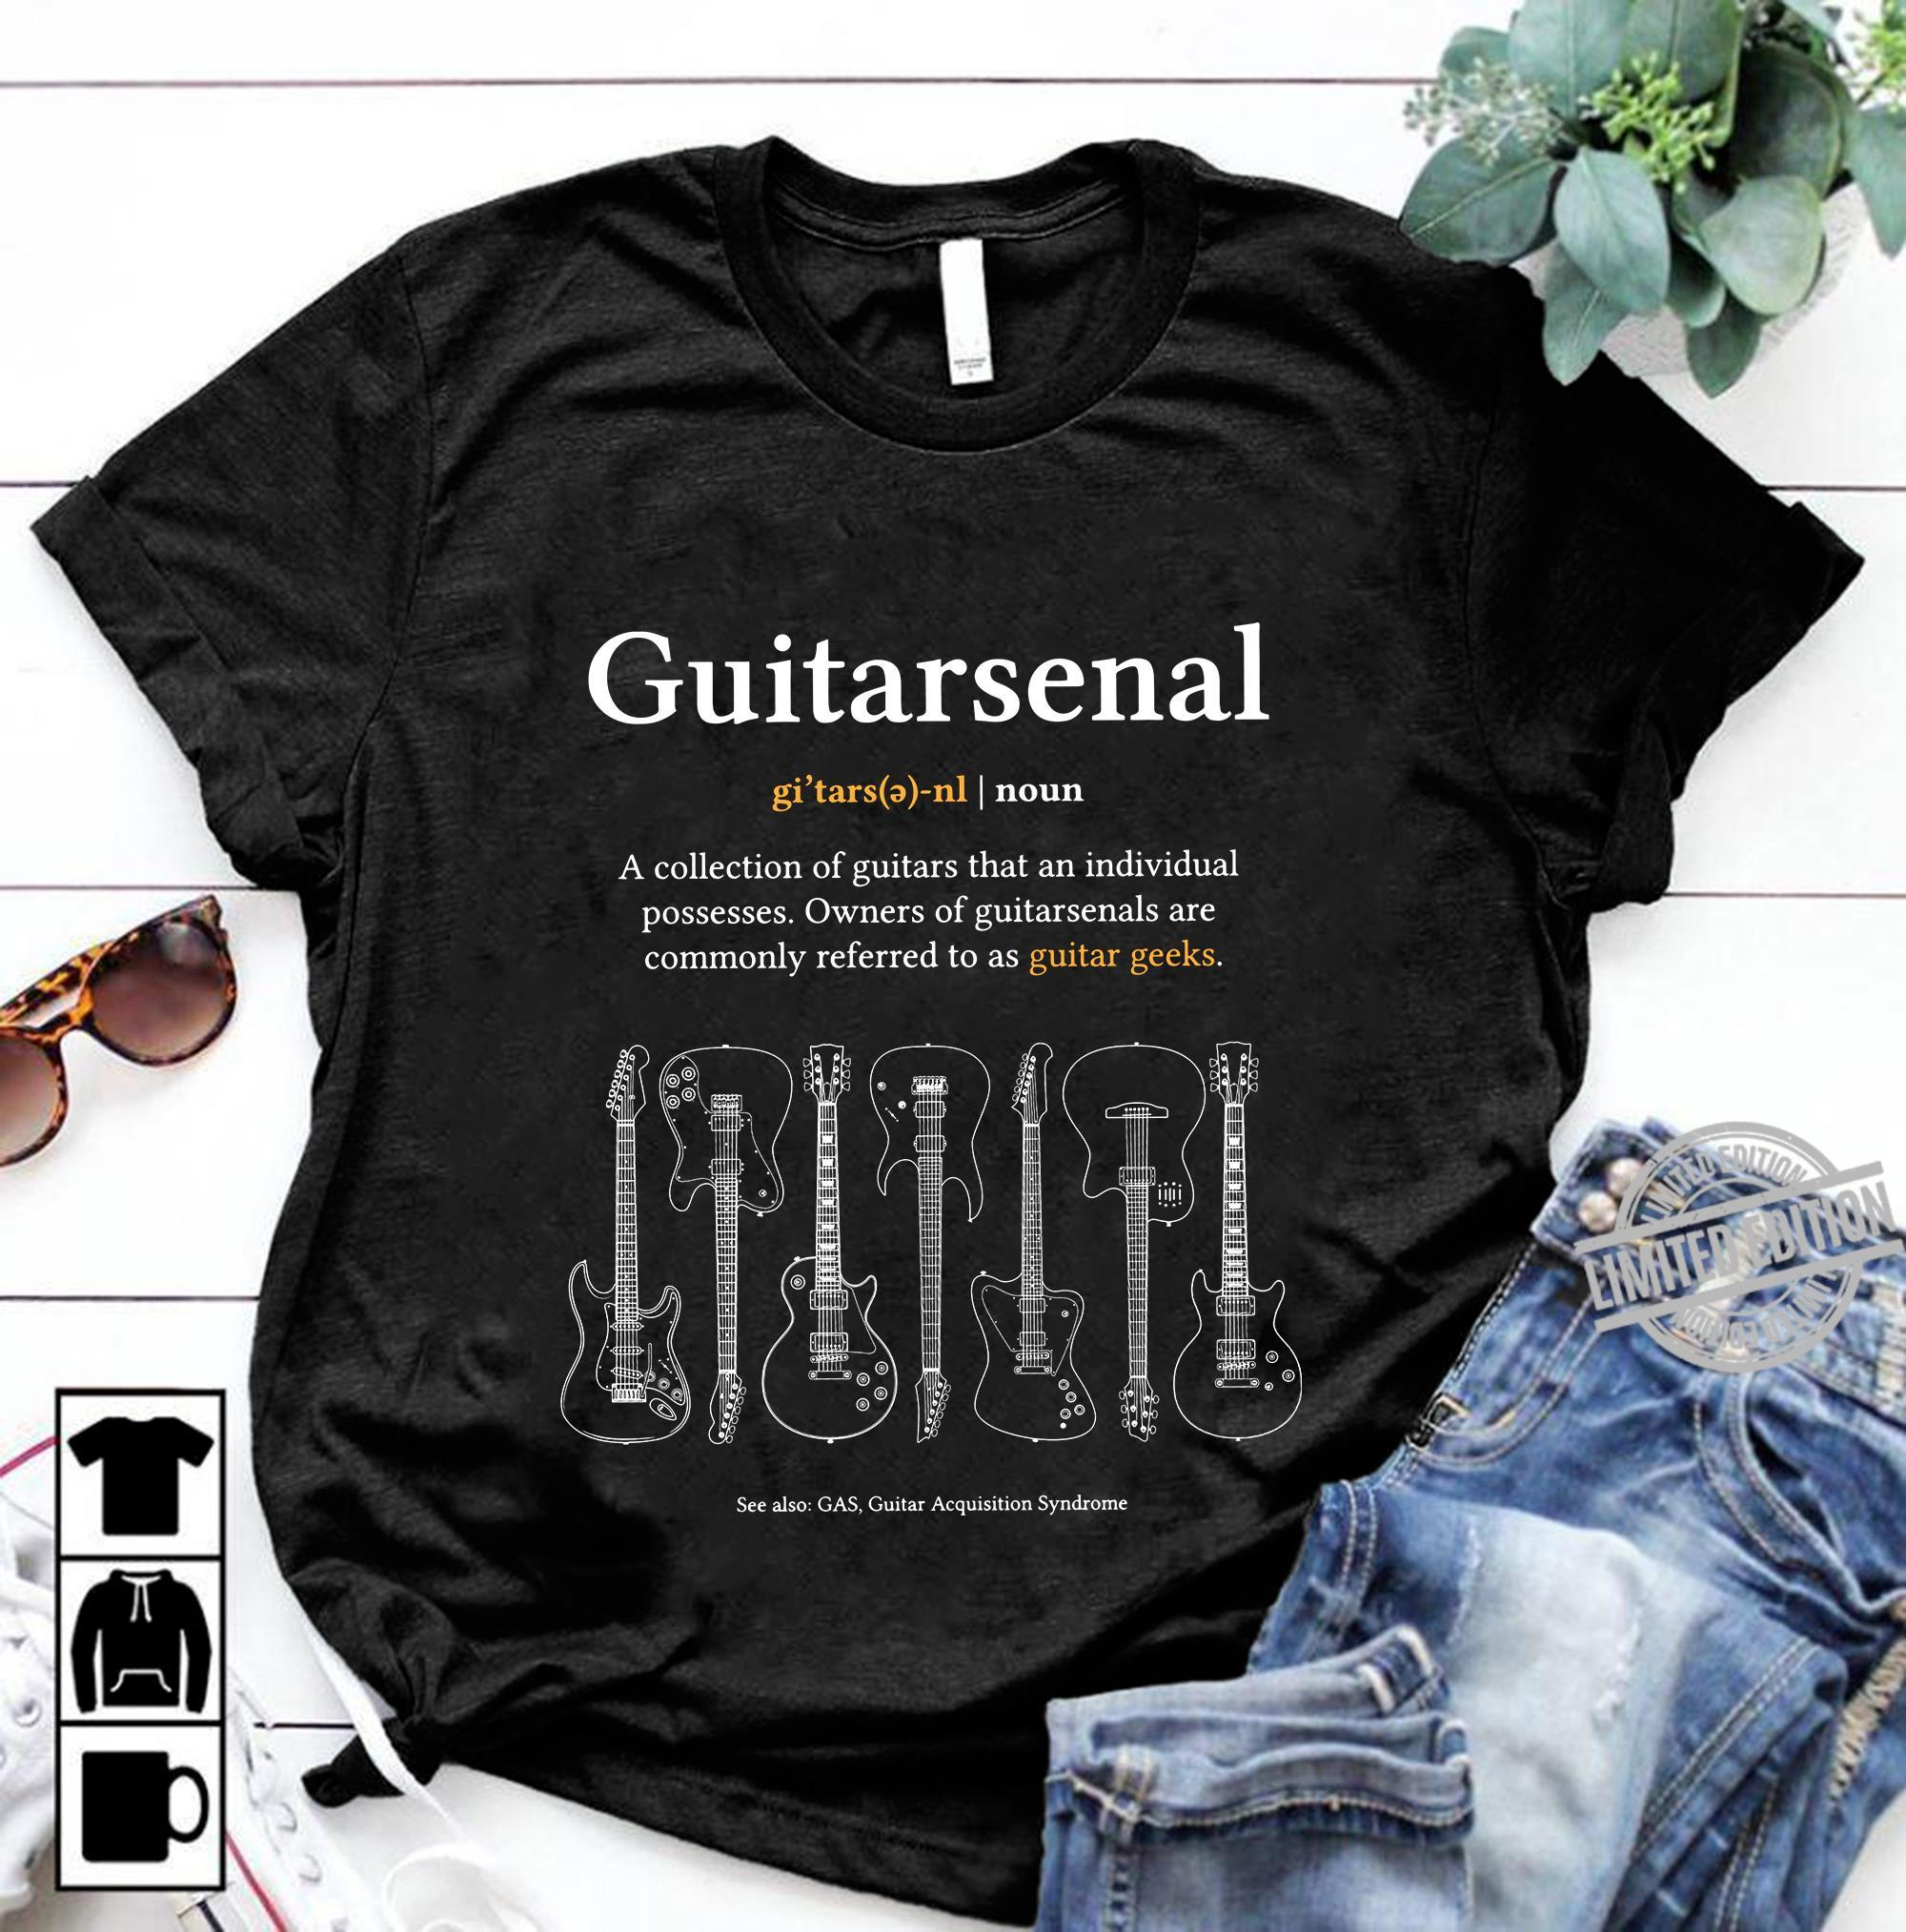 Guitarsenal A Collection Of Guitar That An Individual Possesses Owners Of Guitarsenals Are Commonly Referred To As Guitar Geeks Shirt